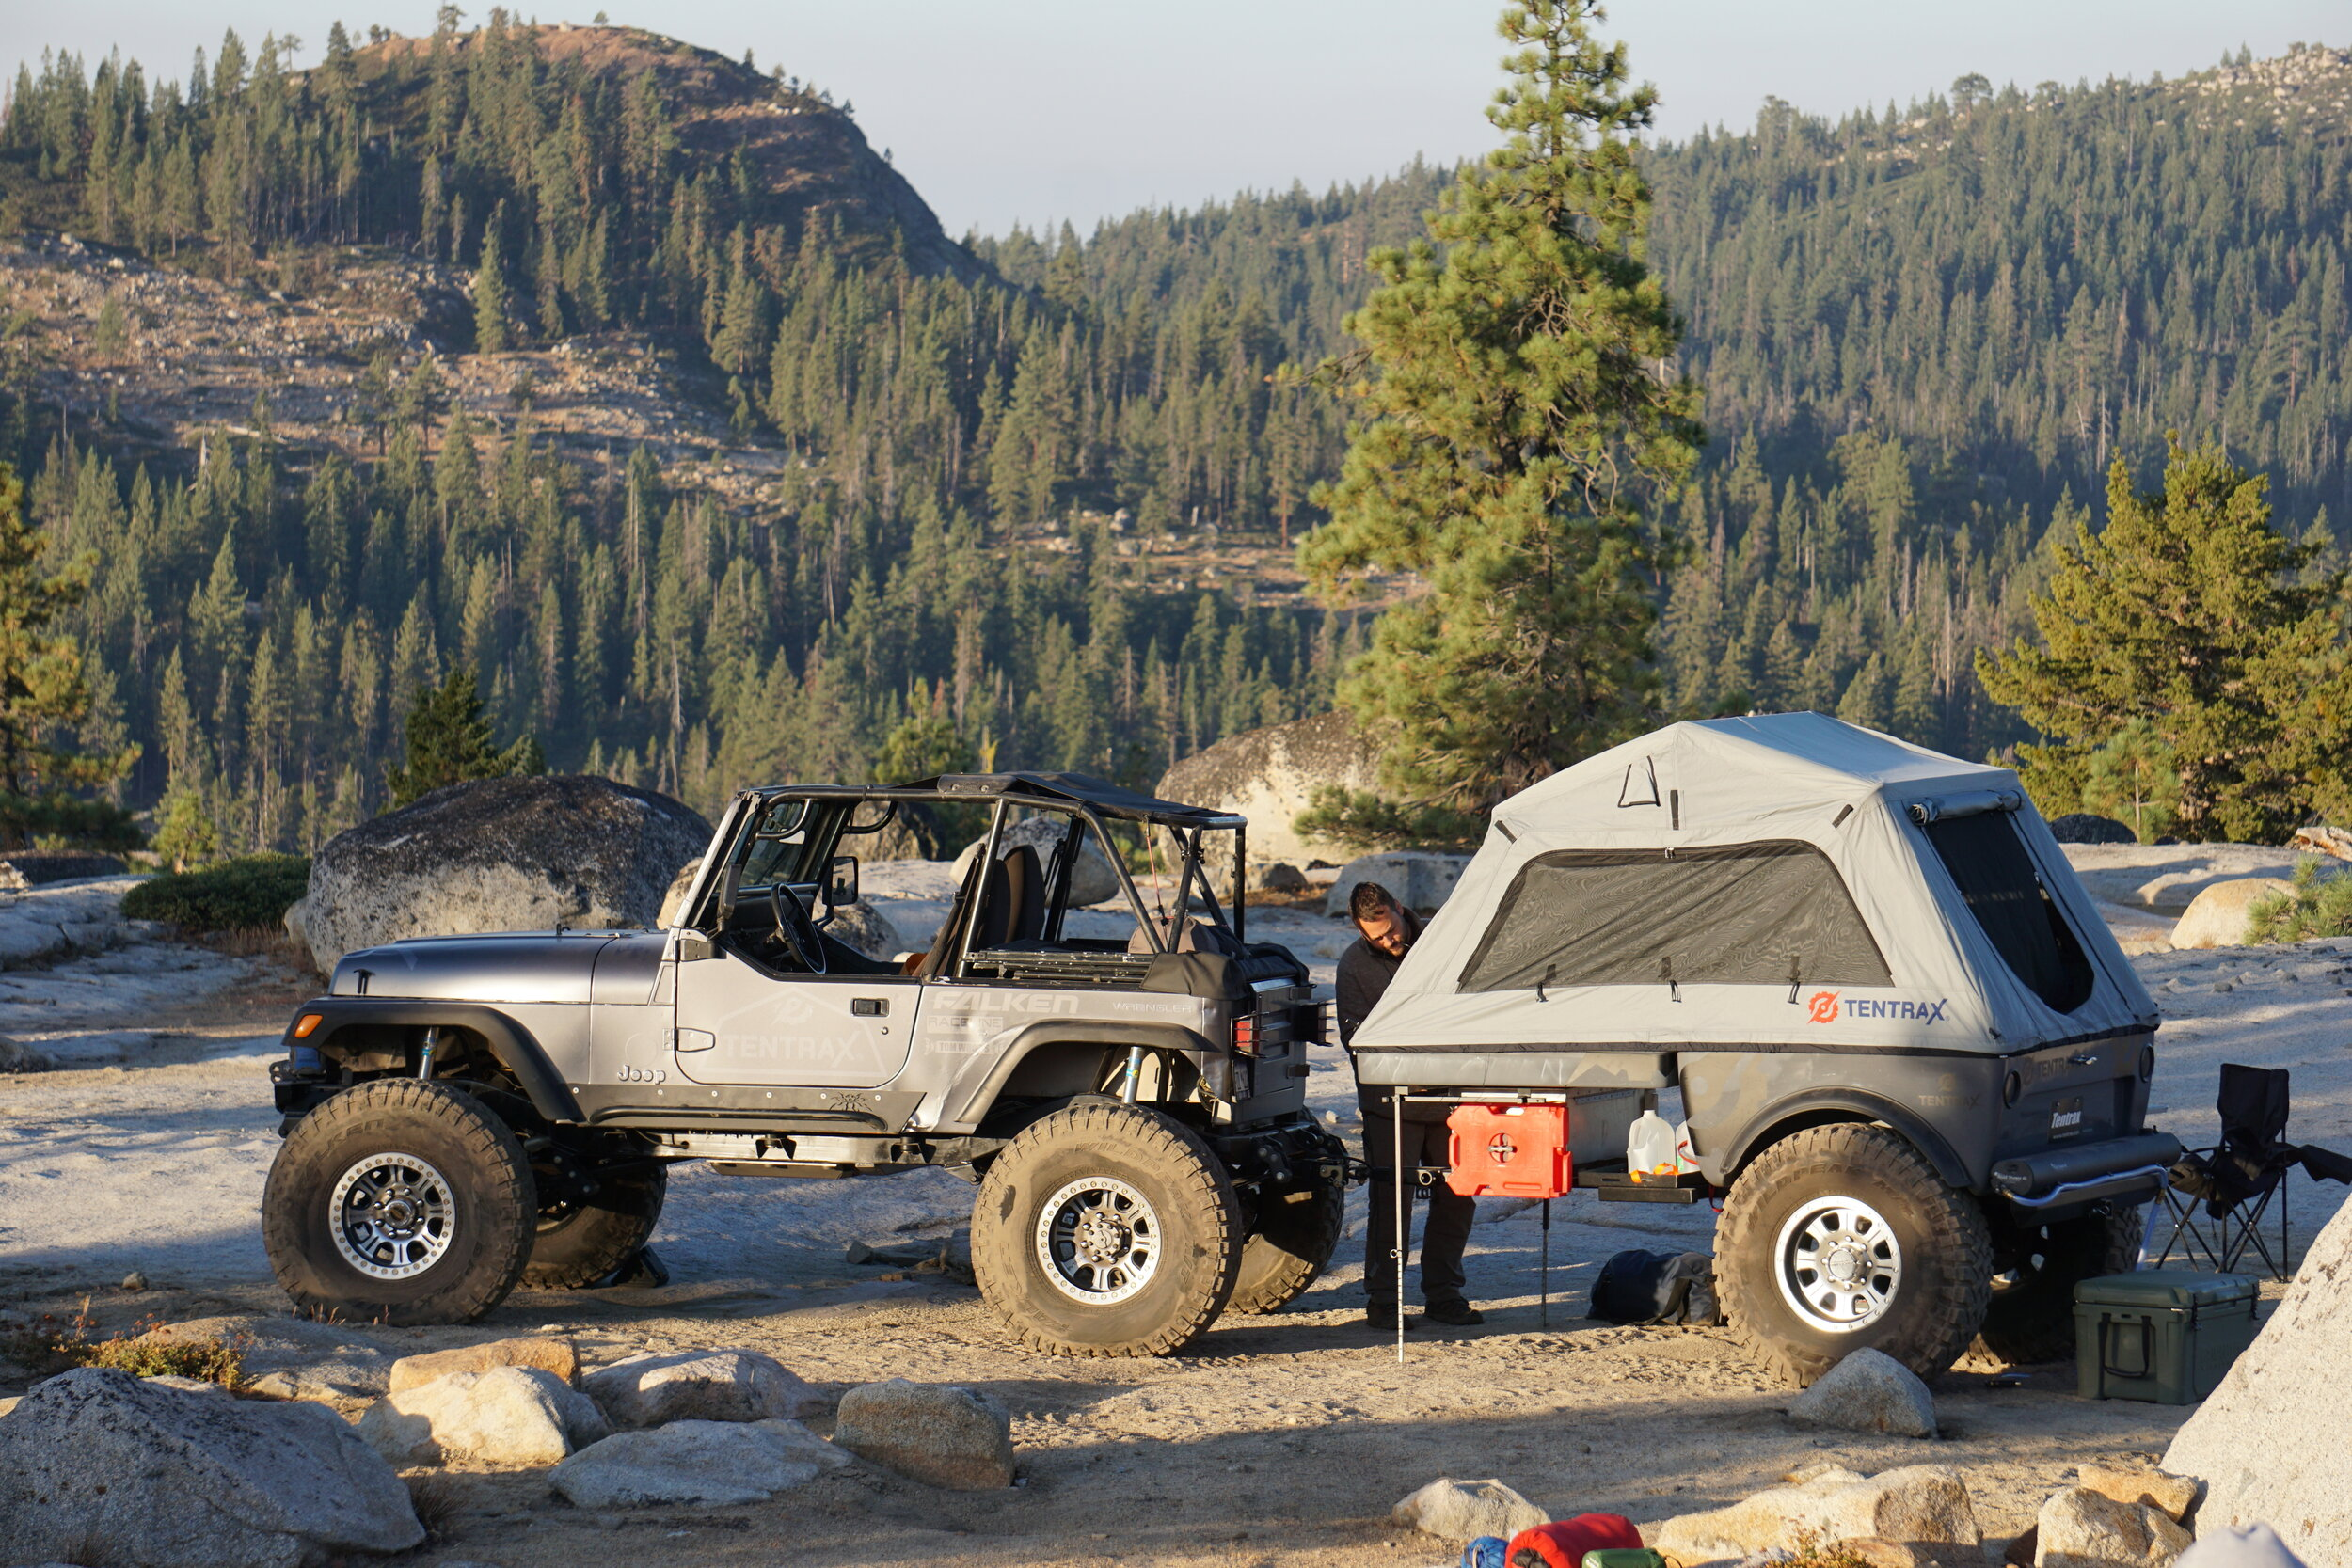 Tentrax Lightweight Compact Tough Offroad Tent Trailers Overland Trailers Off Road Camping Trailer Off Road Camper Jeep Trailer Camper Custom Camper Trailers Contact Us For A Custom Quote